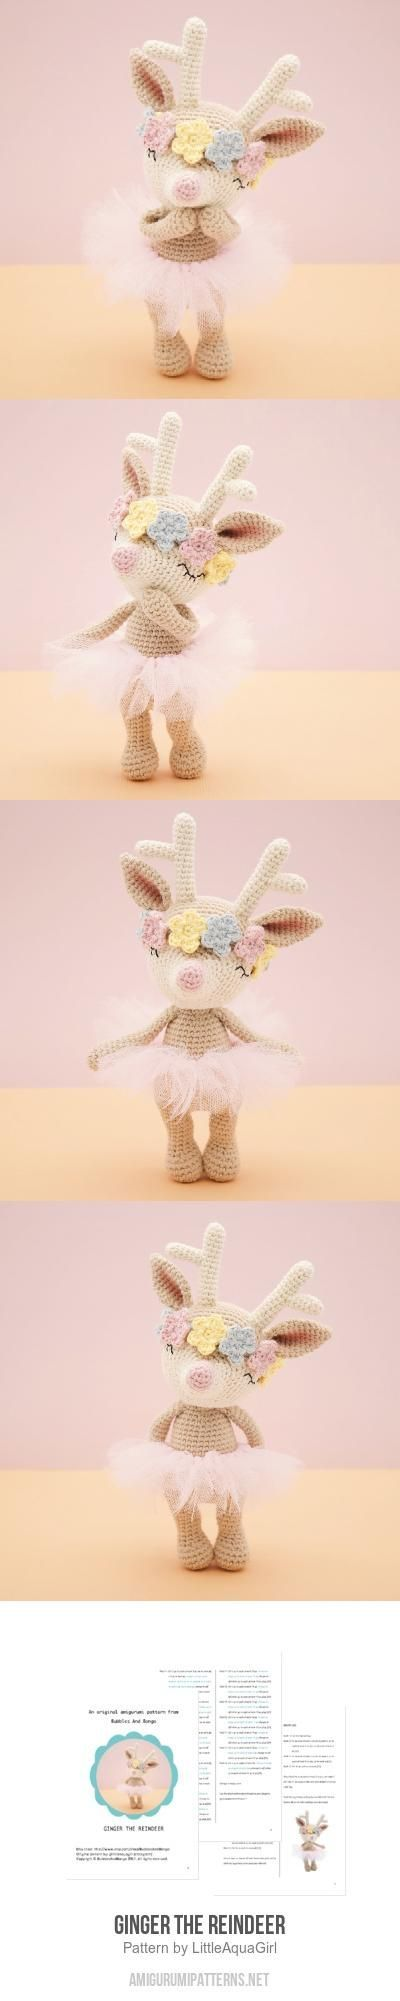 Ginger the reindeer amigurumi pattern